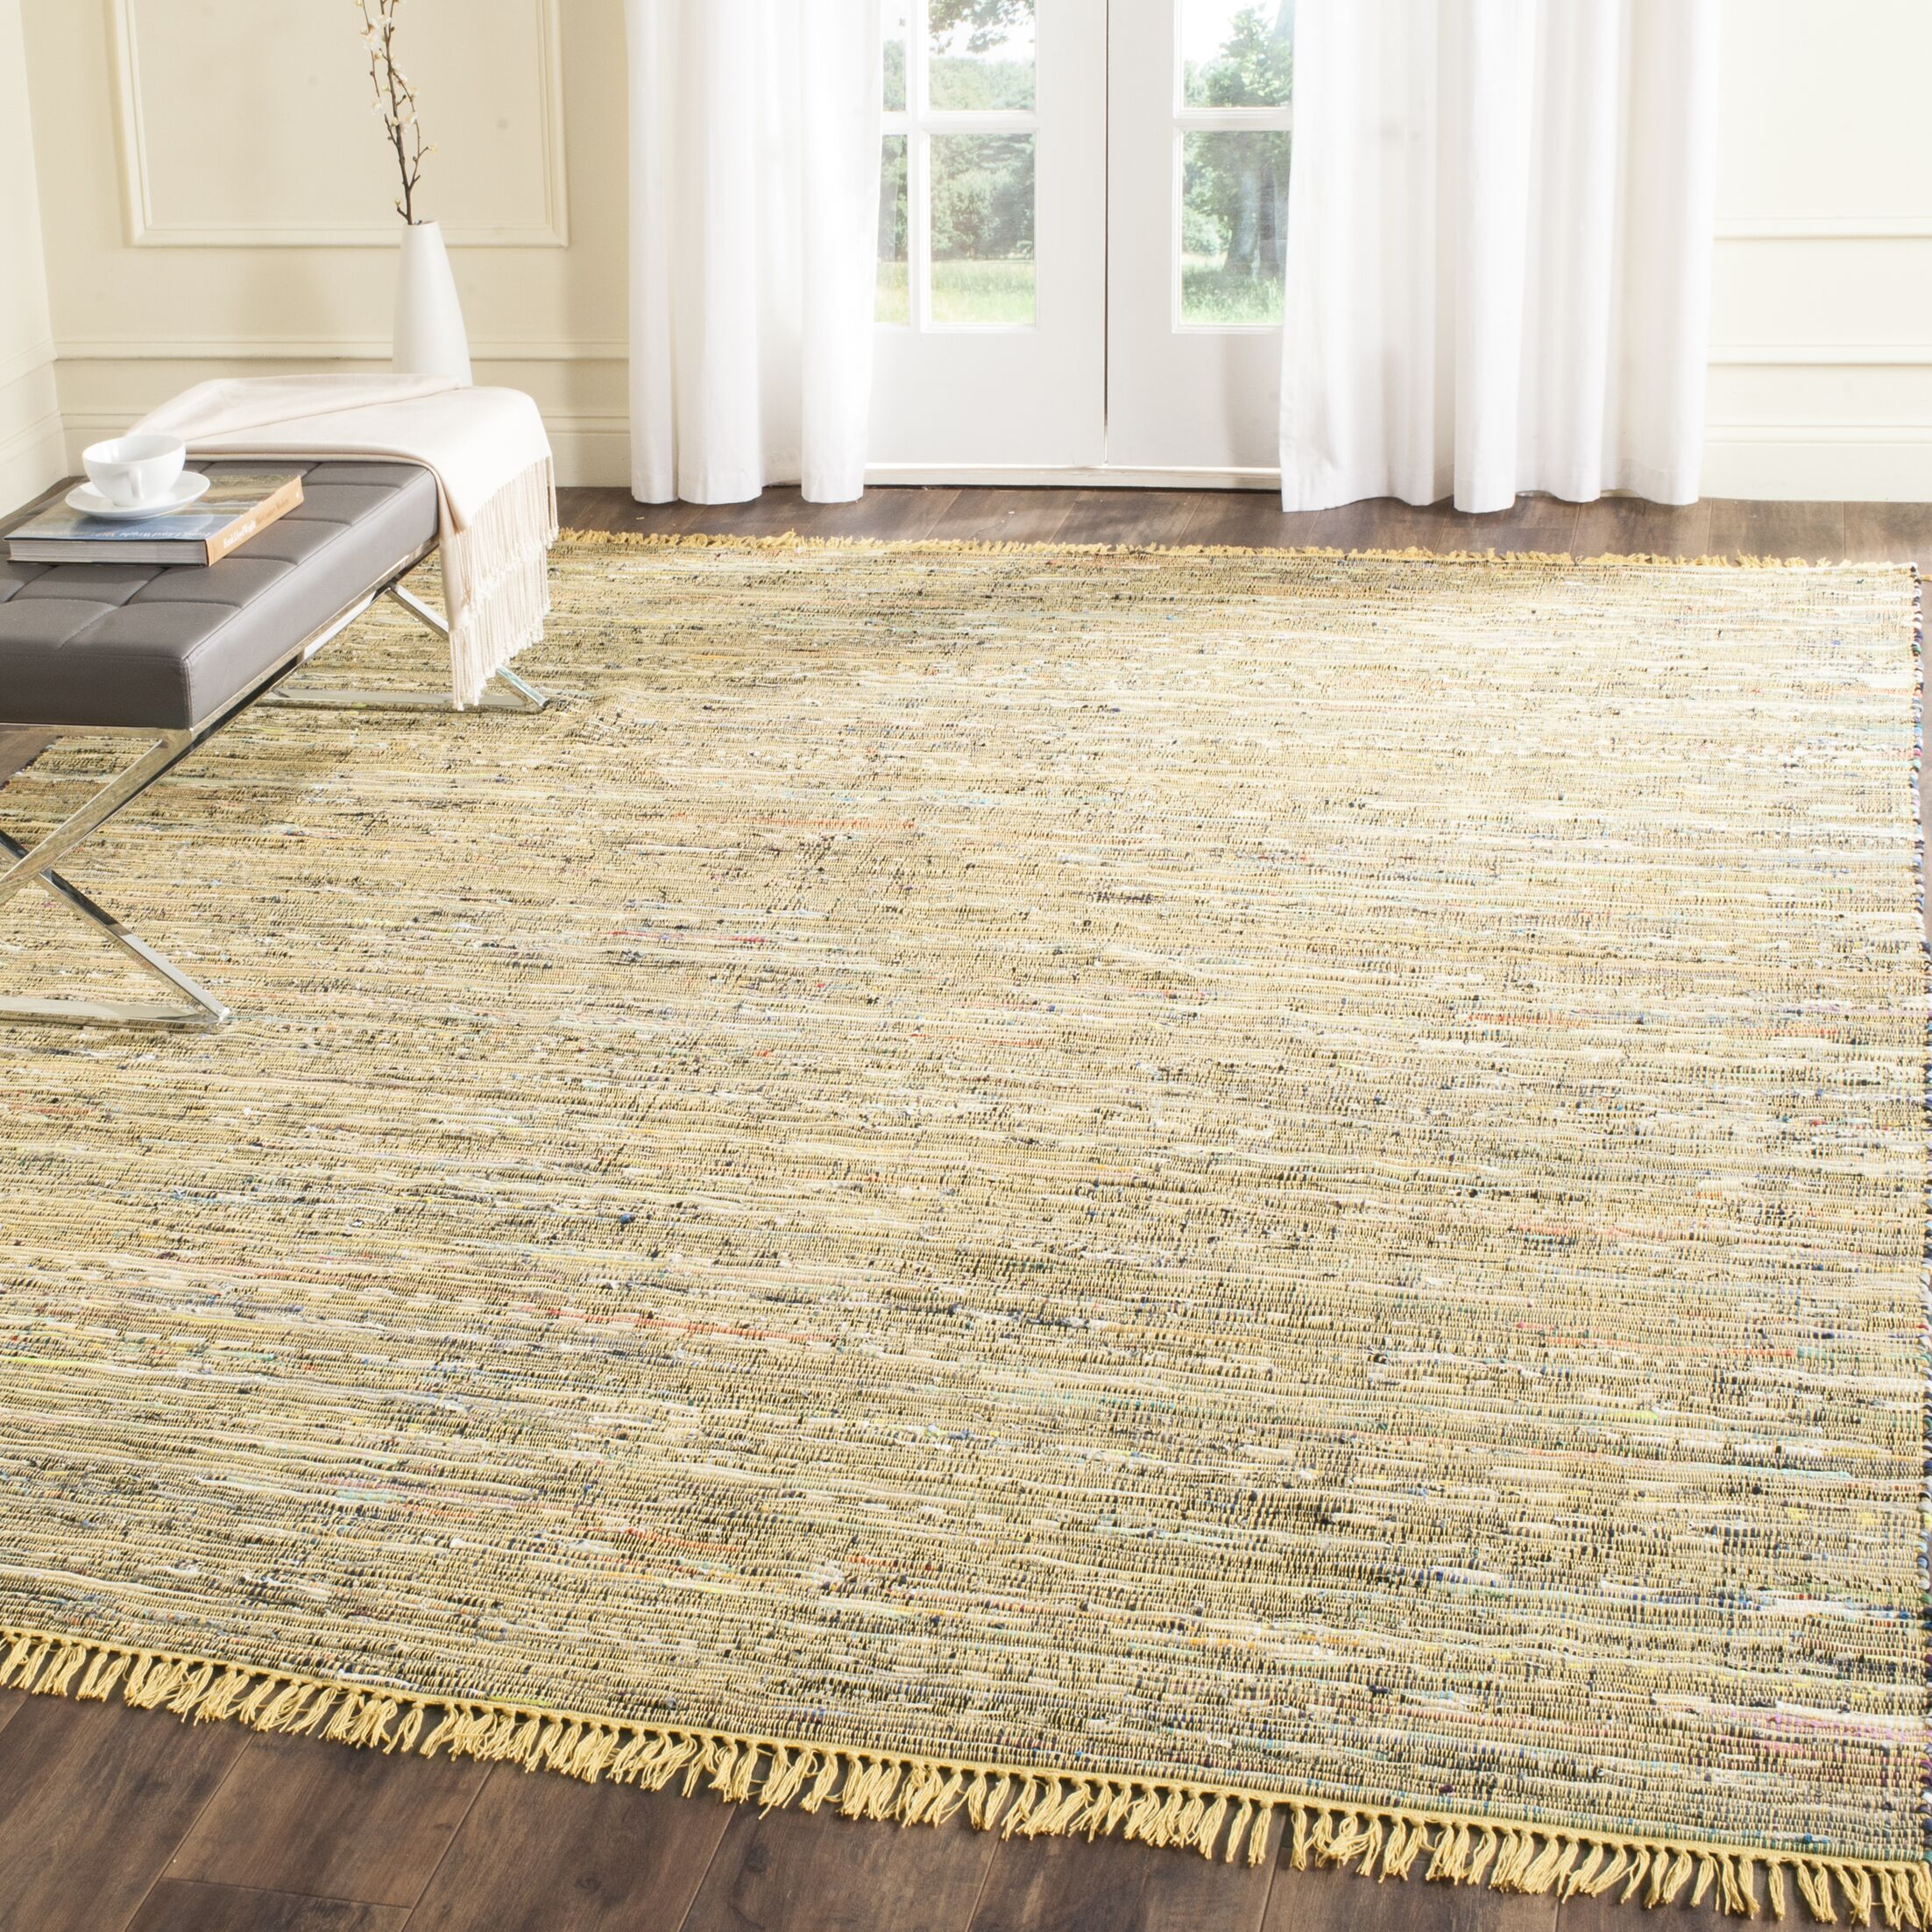 Kellerman Contemporary Hand-Woven Cotton Yellow Area Rug Rug Size: Rectangle 6' x 9'